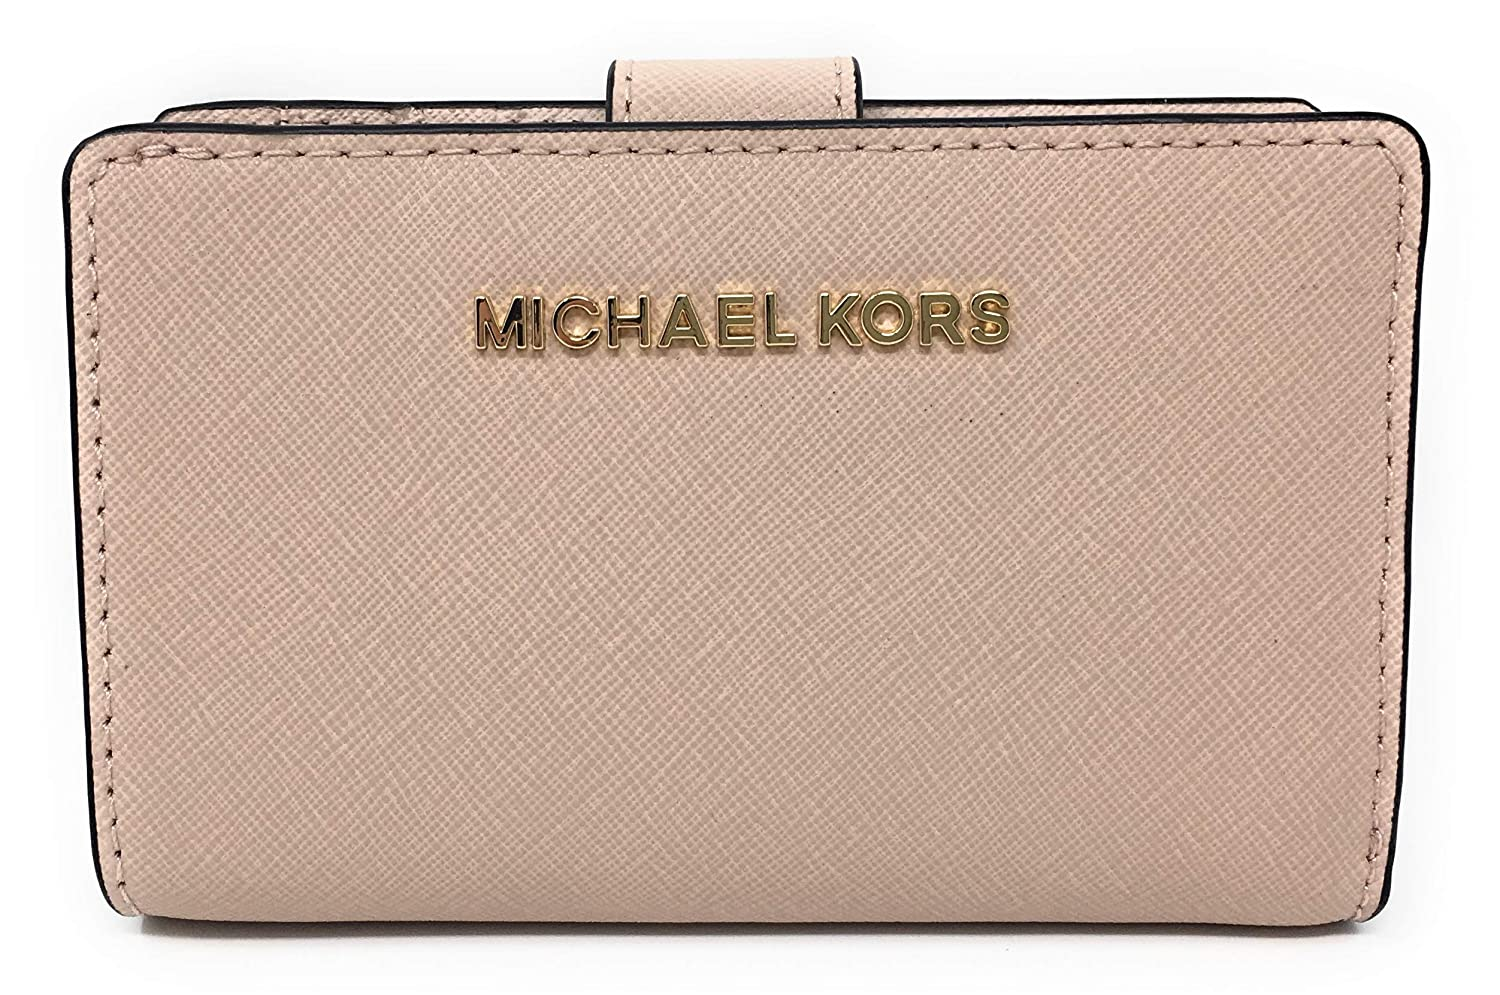 adaf8c3e4ecd Michael Kors Jet Set Travel Saffiano Leather Bifold Zip Coin Wallet  (Ballet) at Amazon Women's Clothing store: